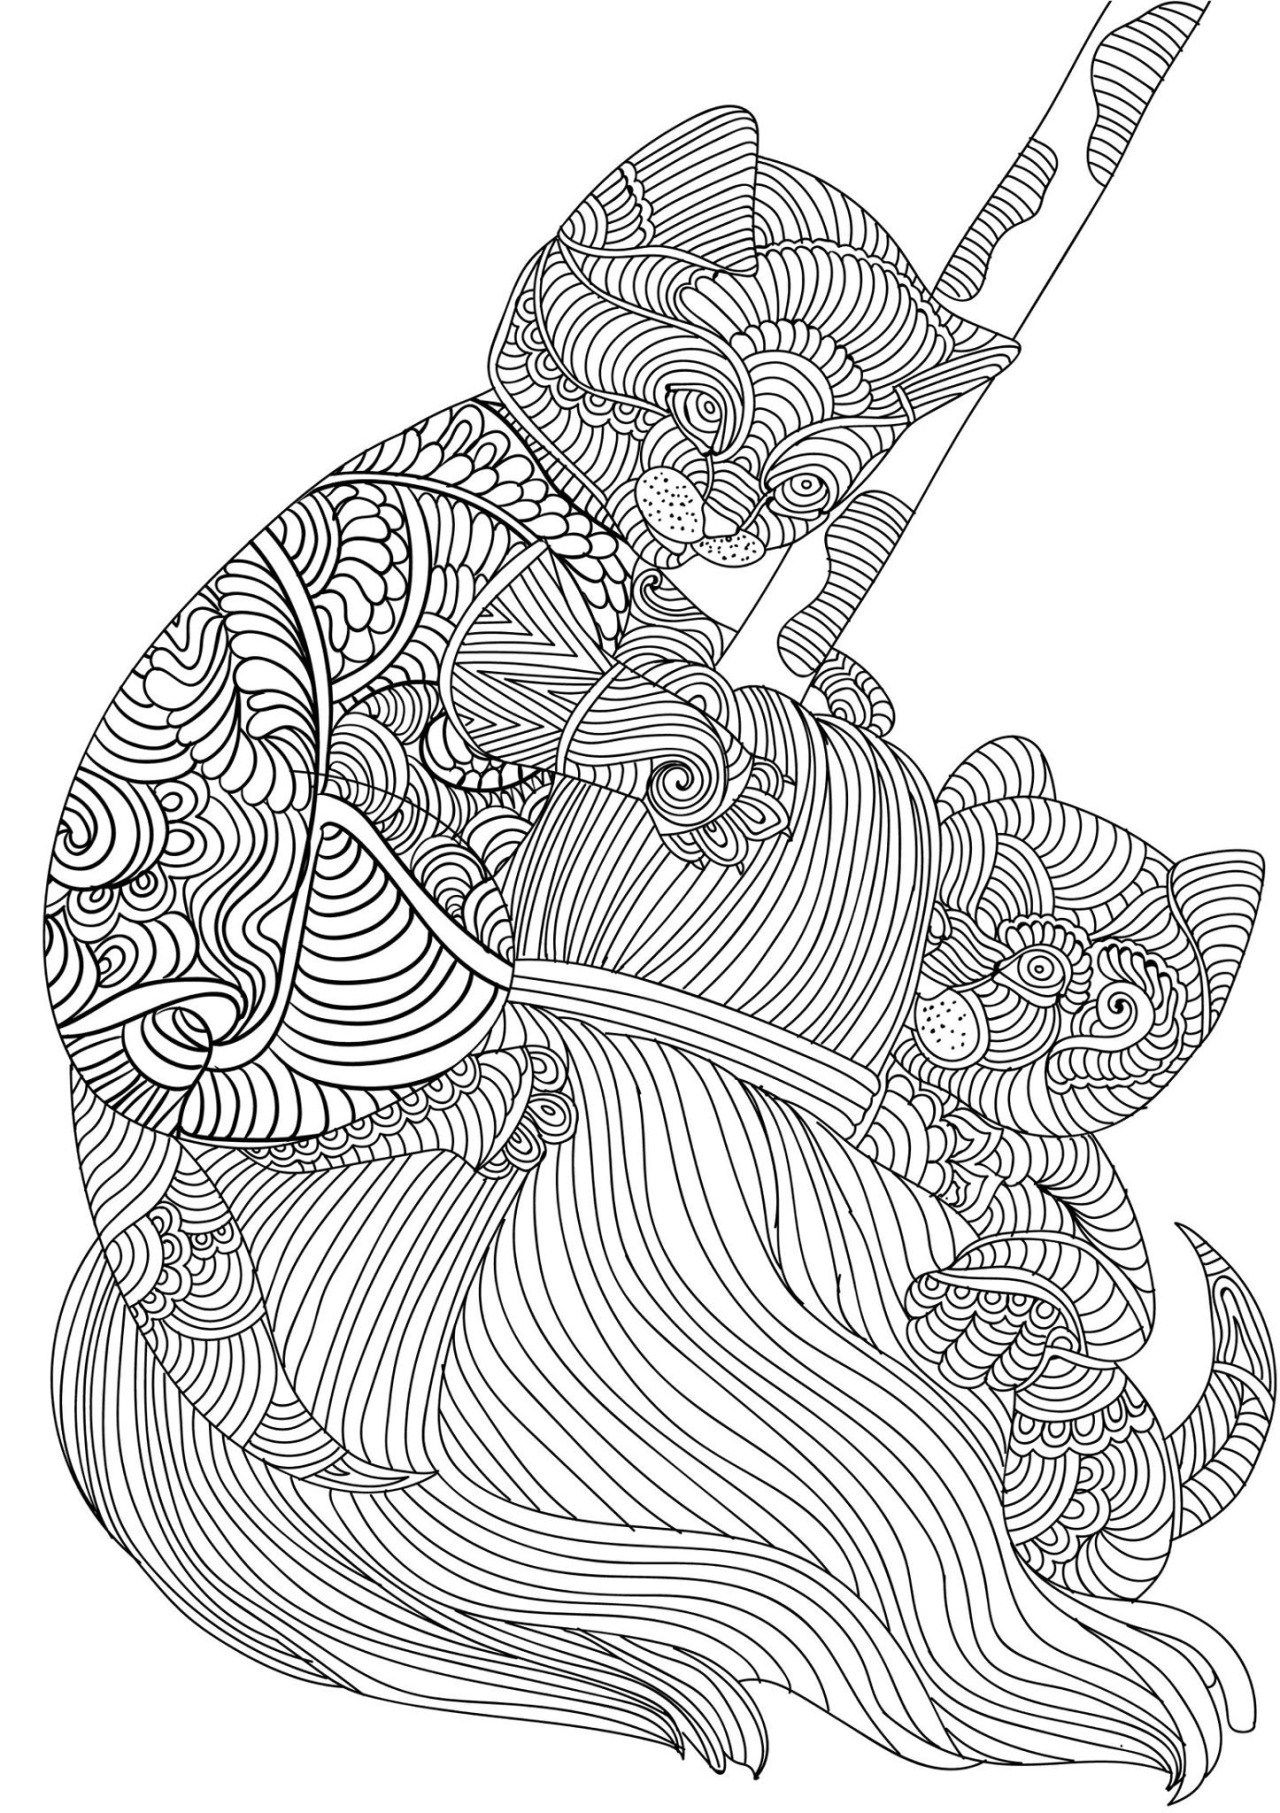 Adult Coloring Pages: Cats 3-3 | coloring pages | Pinterest ...